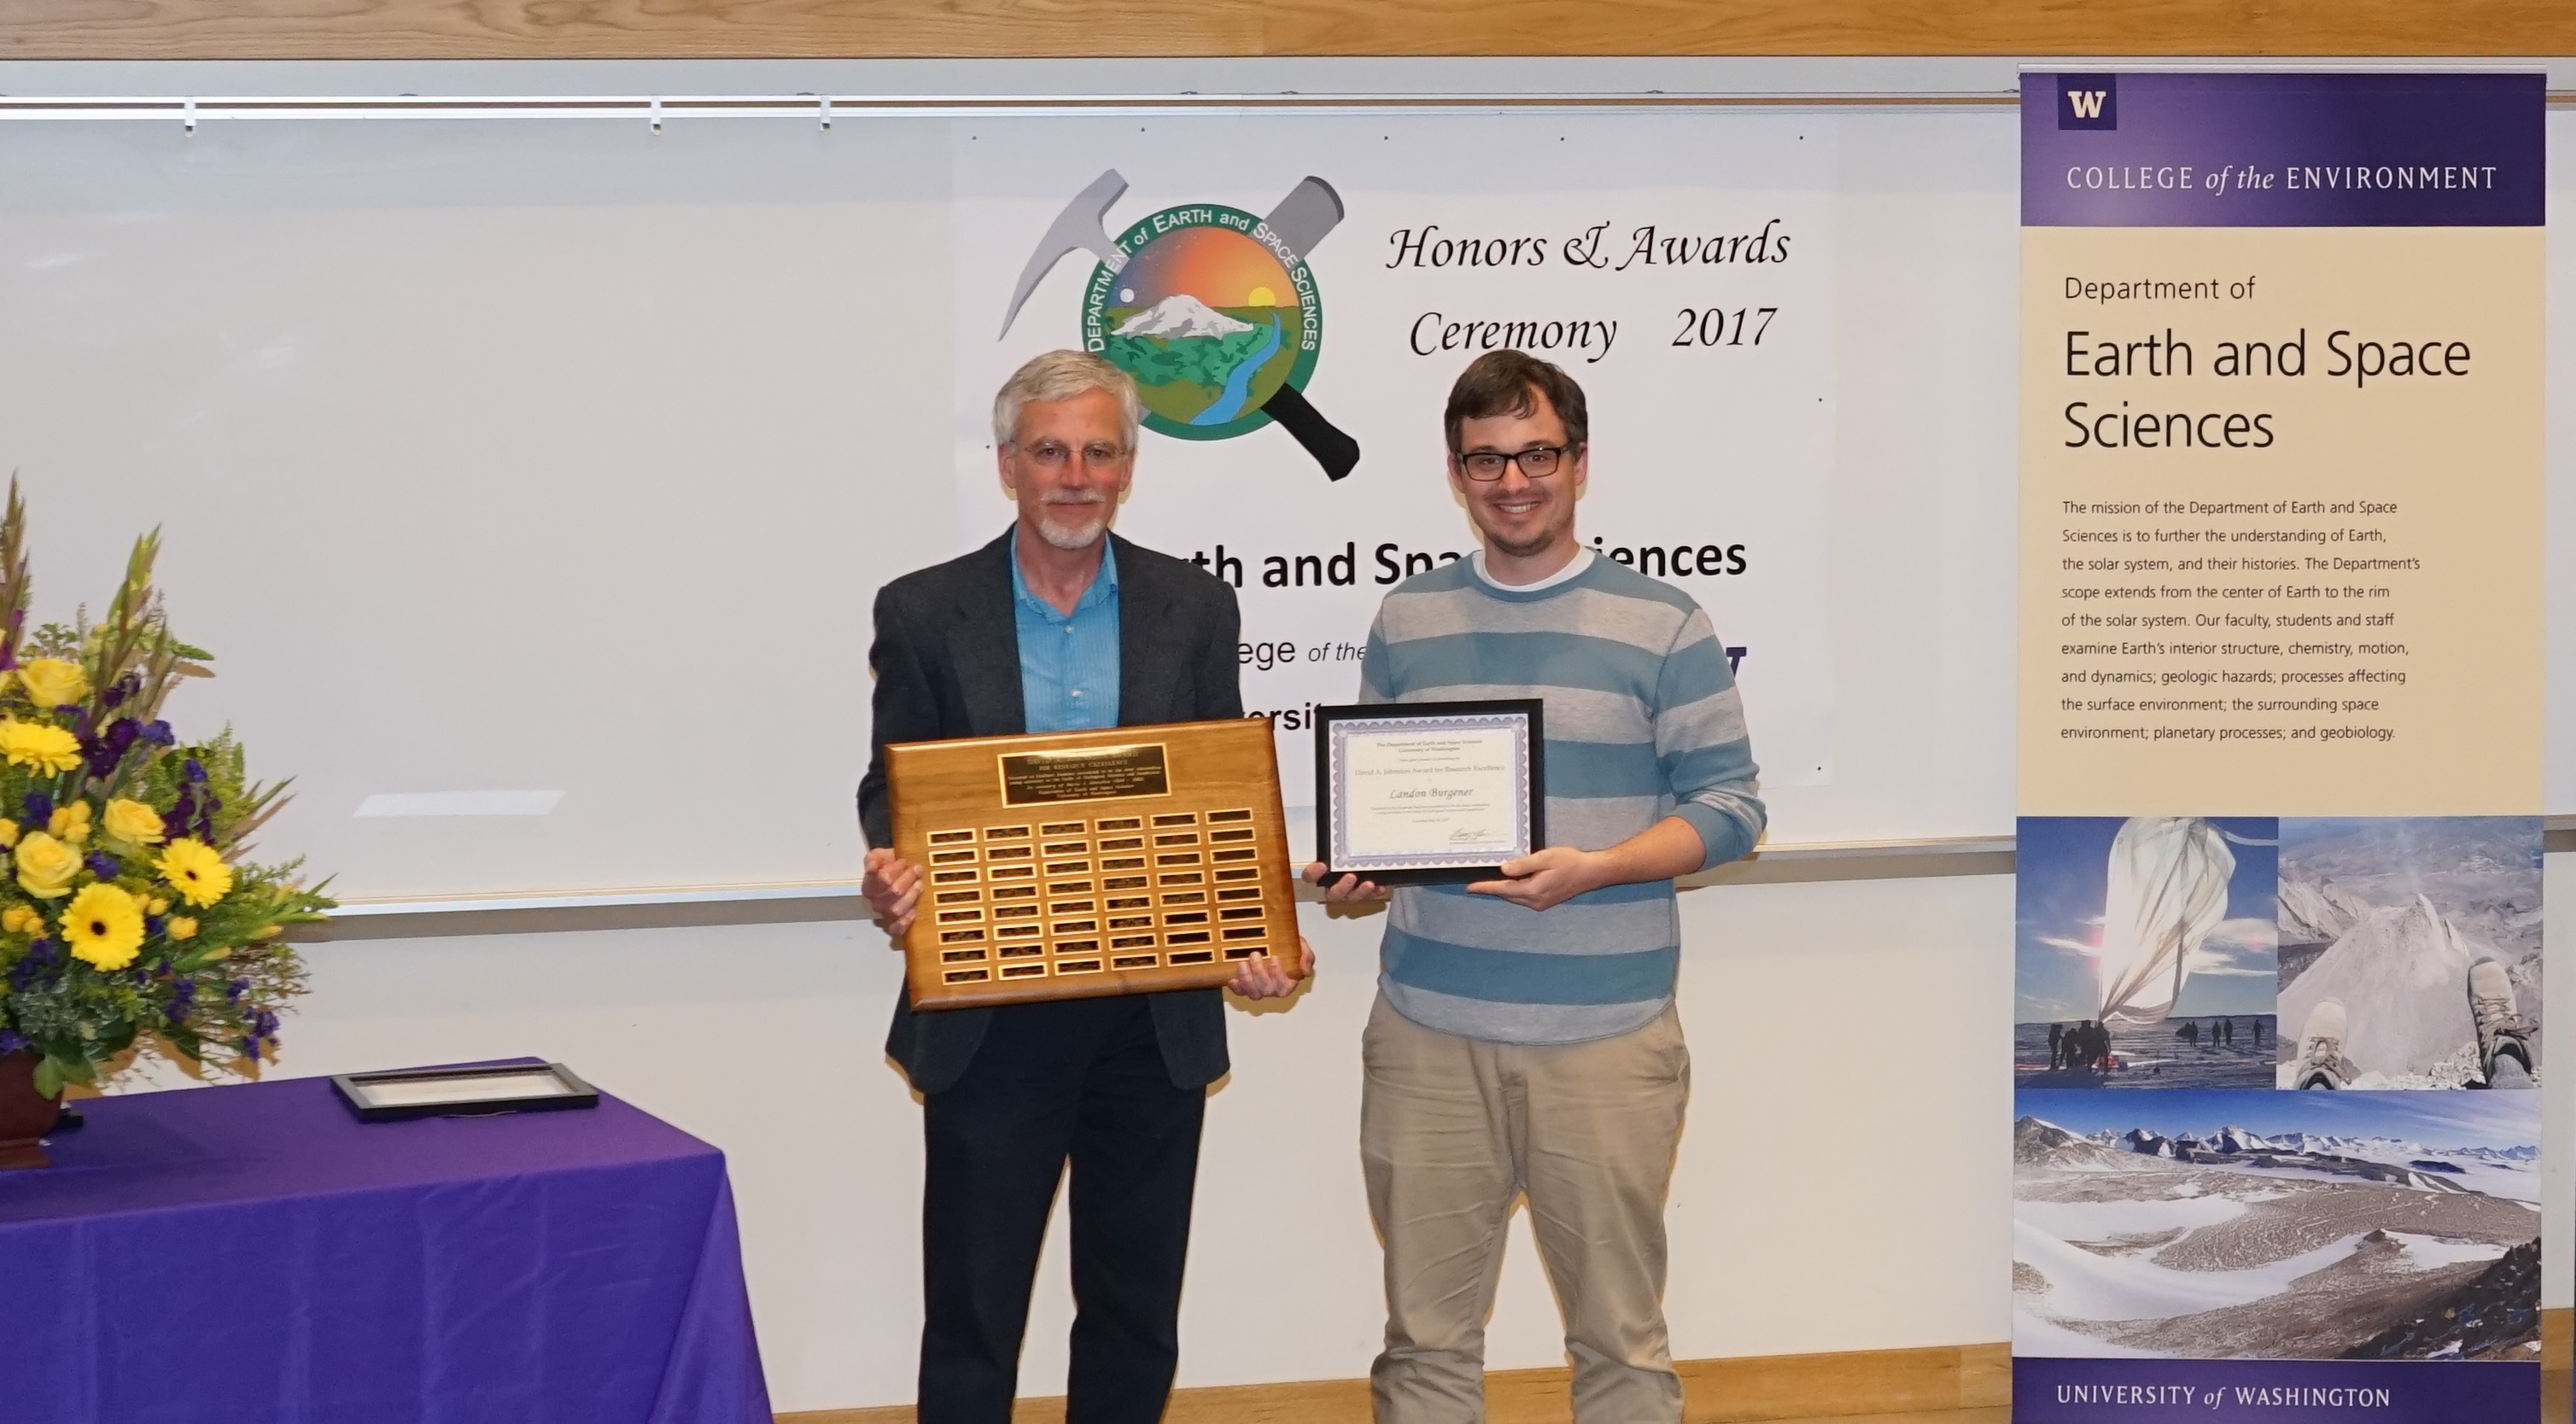 Photo of Landon Burgener receiving the Johnston Prize for Research Excellence from Ken Creager.